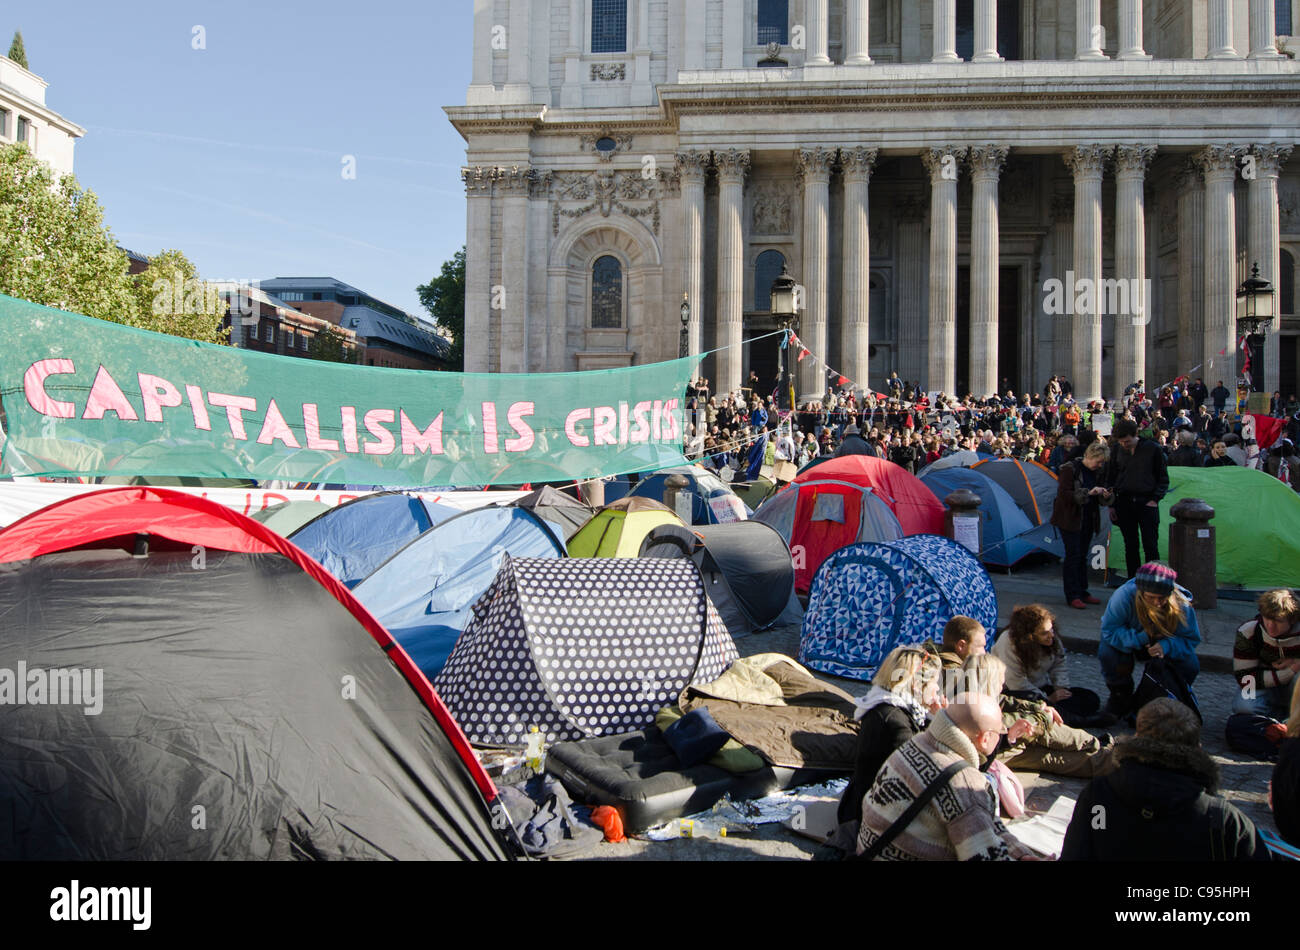 Anti Capitalist Tent protesters St Paul's Cathedral, City of London Uk. Occupy London - Stock Image